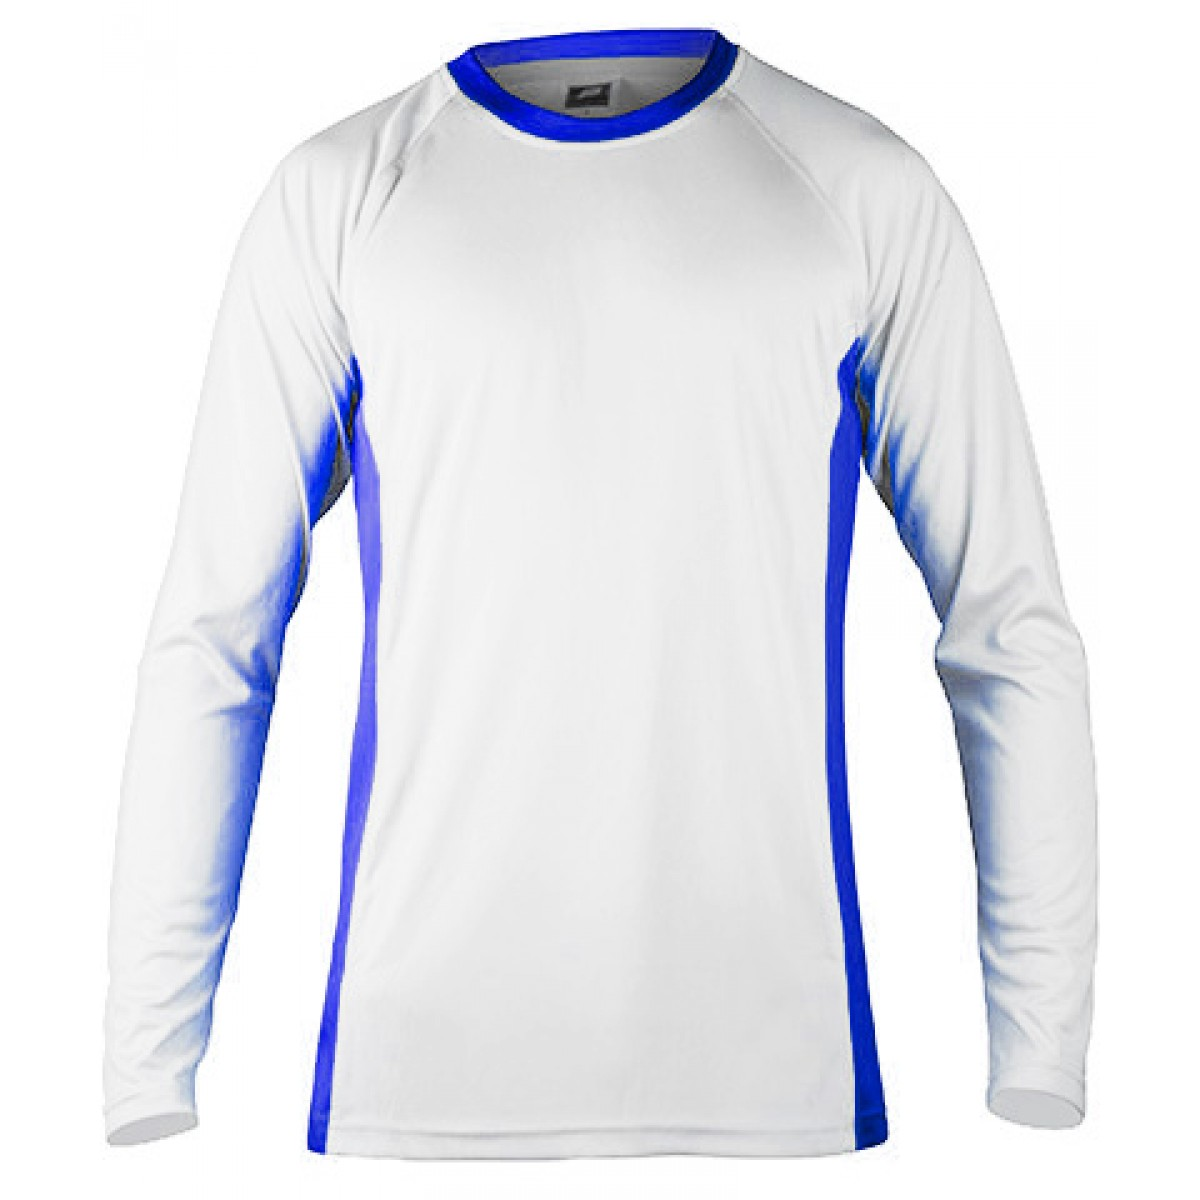 Long Sleeves Performance With Side Insert-White/Blue-M